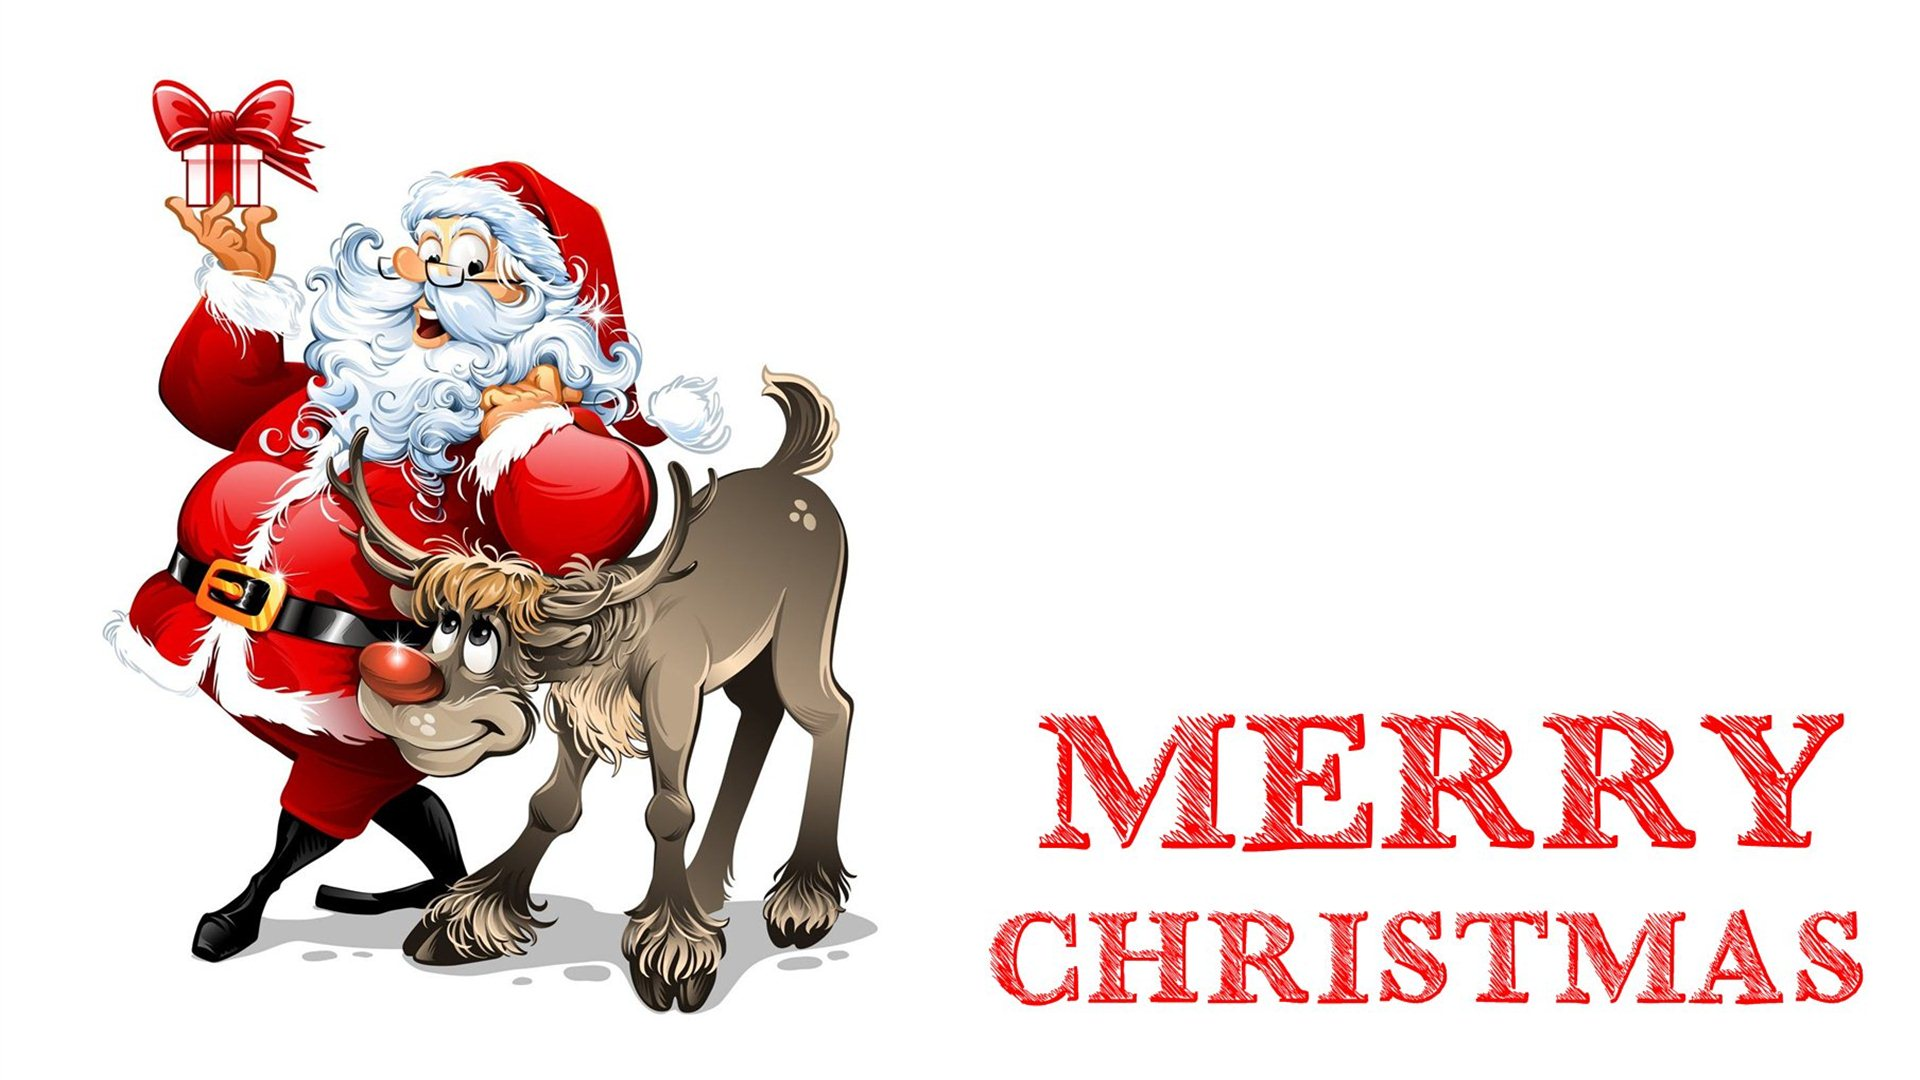 Happy Merry Christmas 2018 Wallpapers